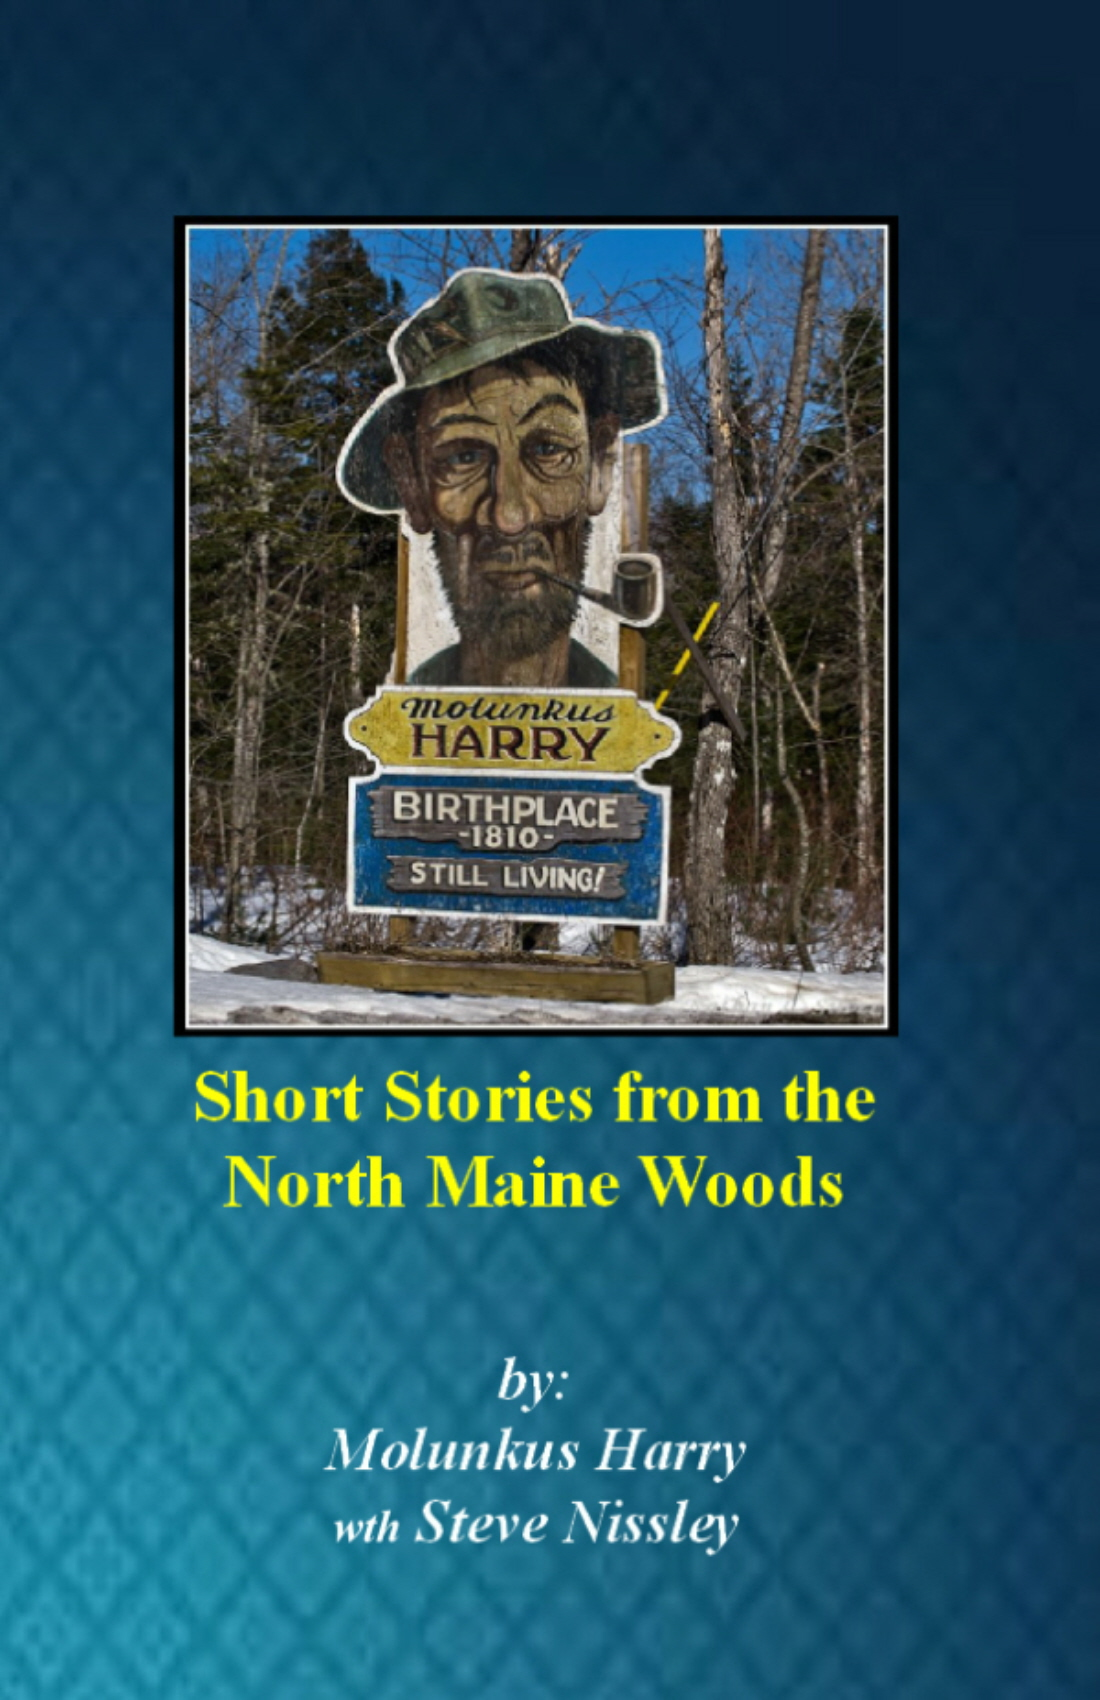 Short Stories form the Maine North Woods